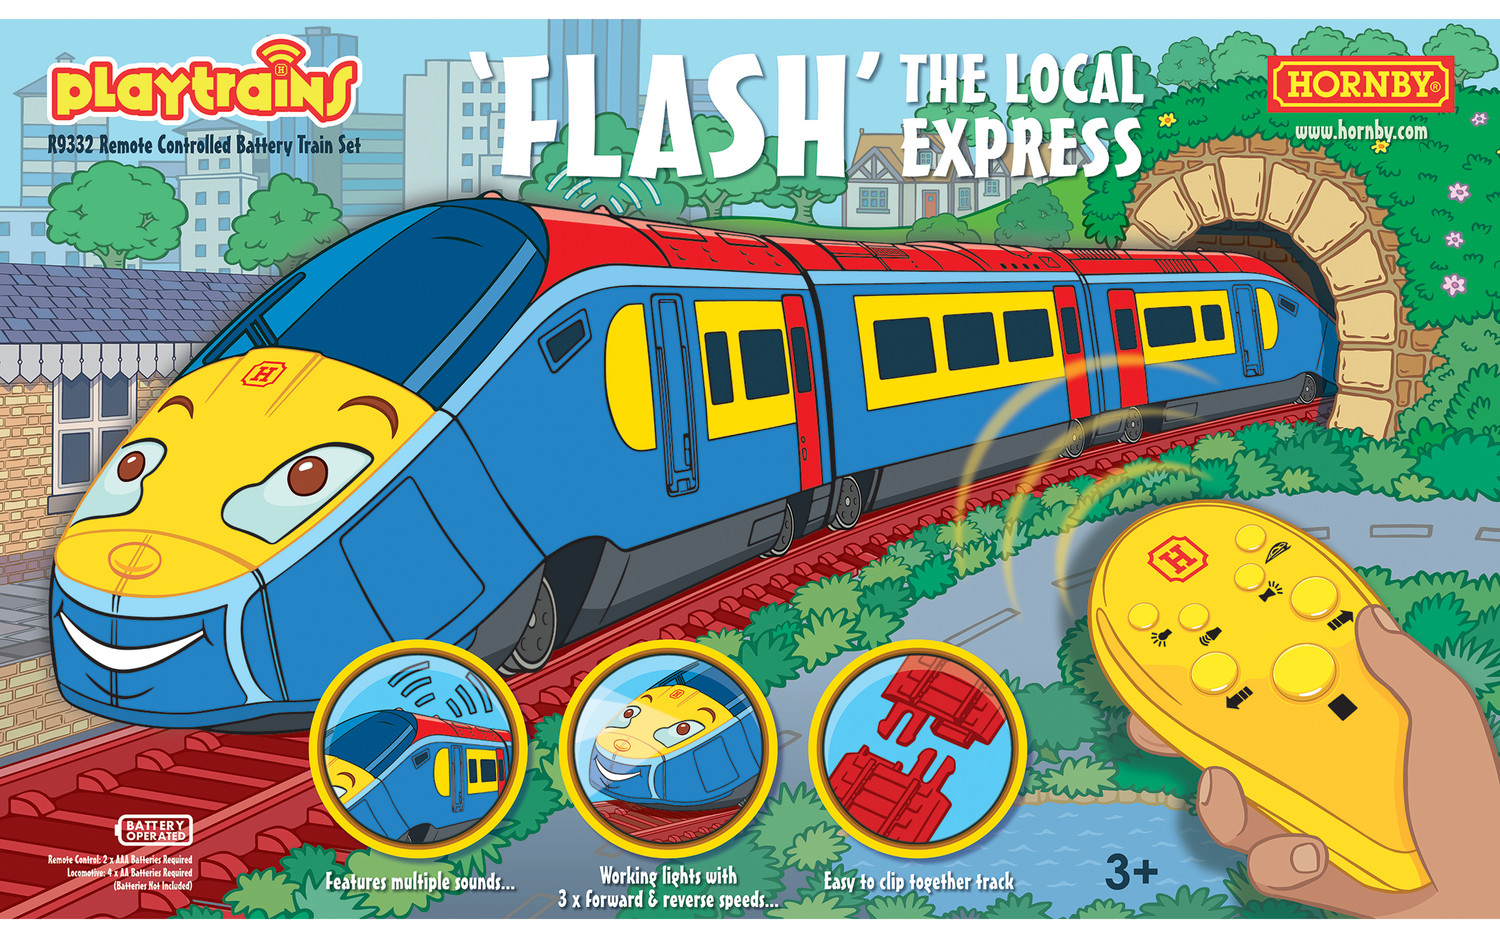 R9332 Hornby Playtrains Flash The Local Express Remote Train Set